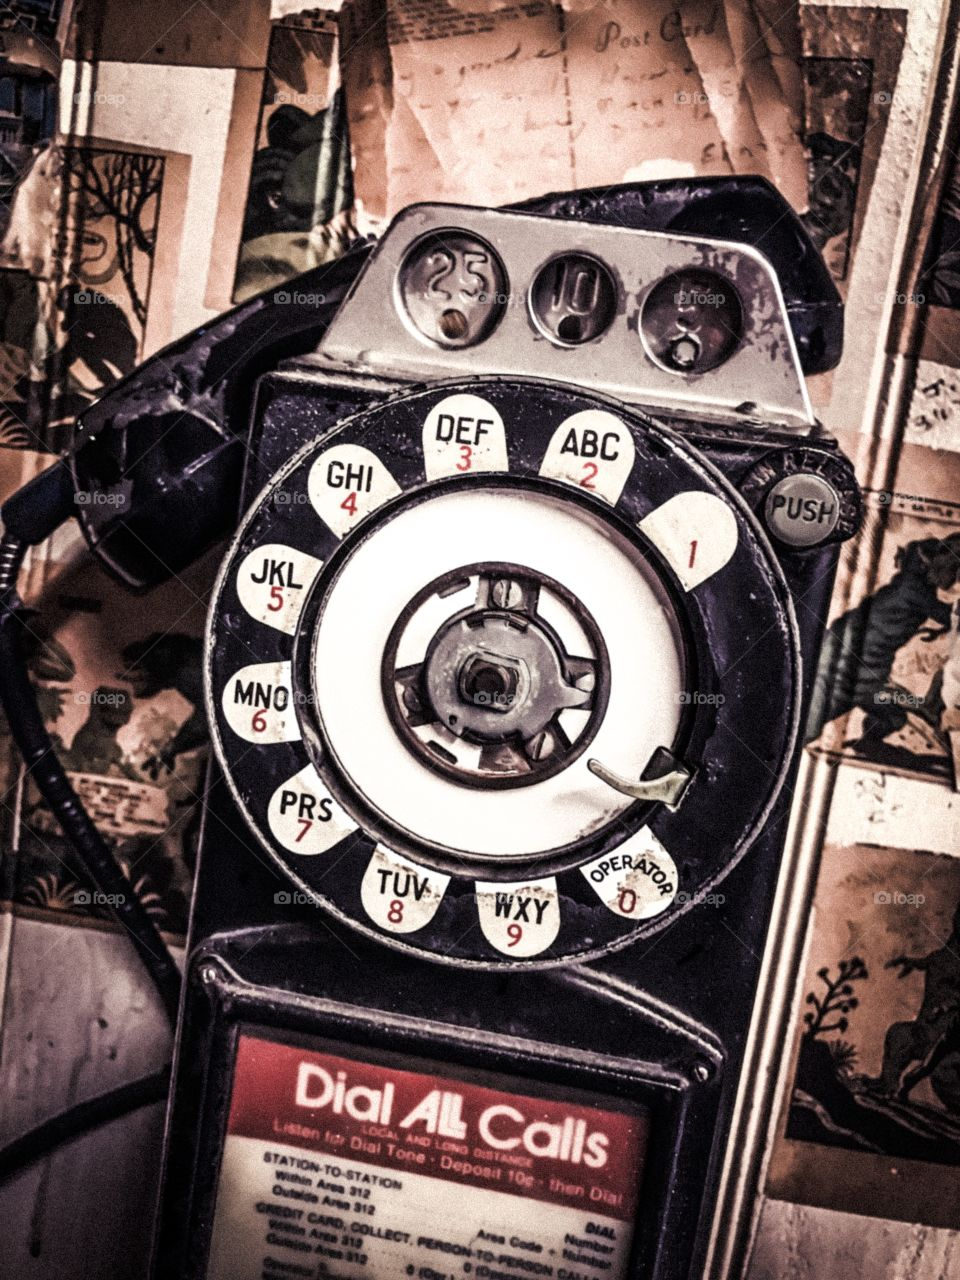 Once upon a time phones required small change to place a call. Weird!